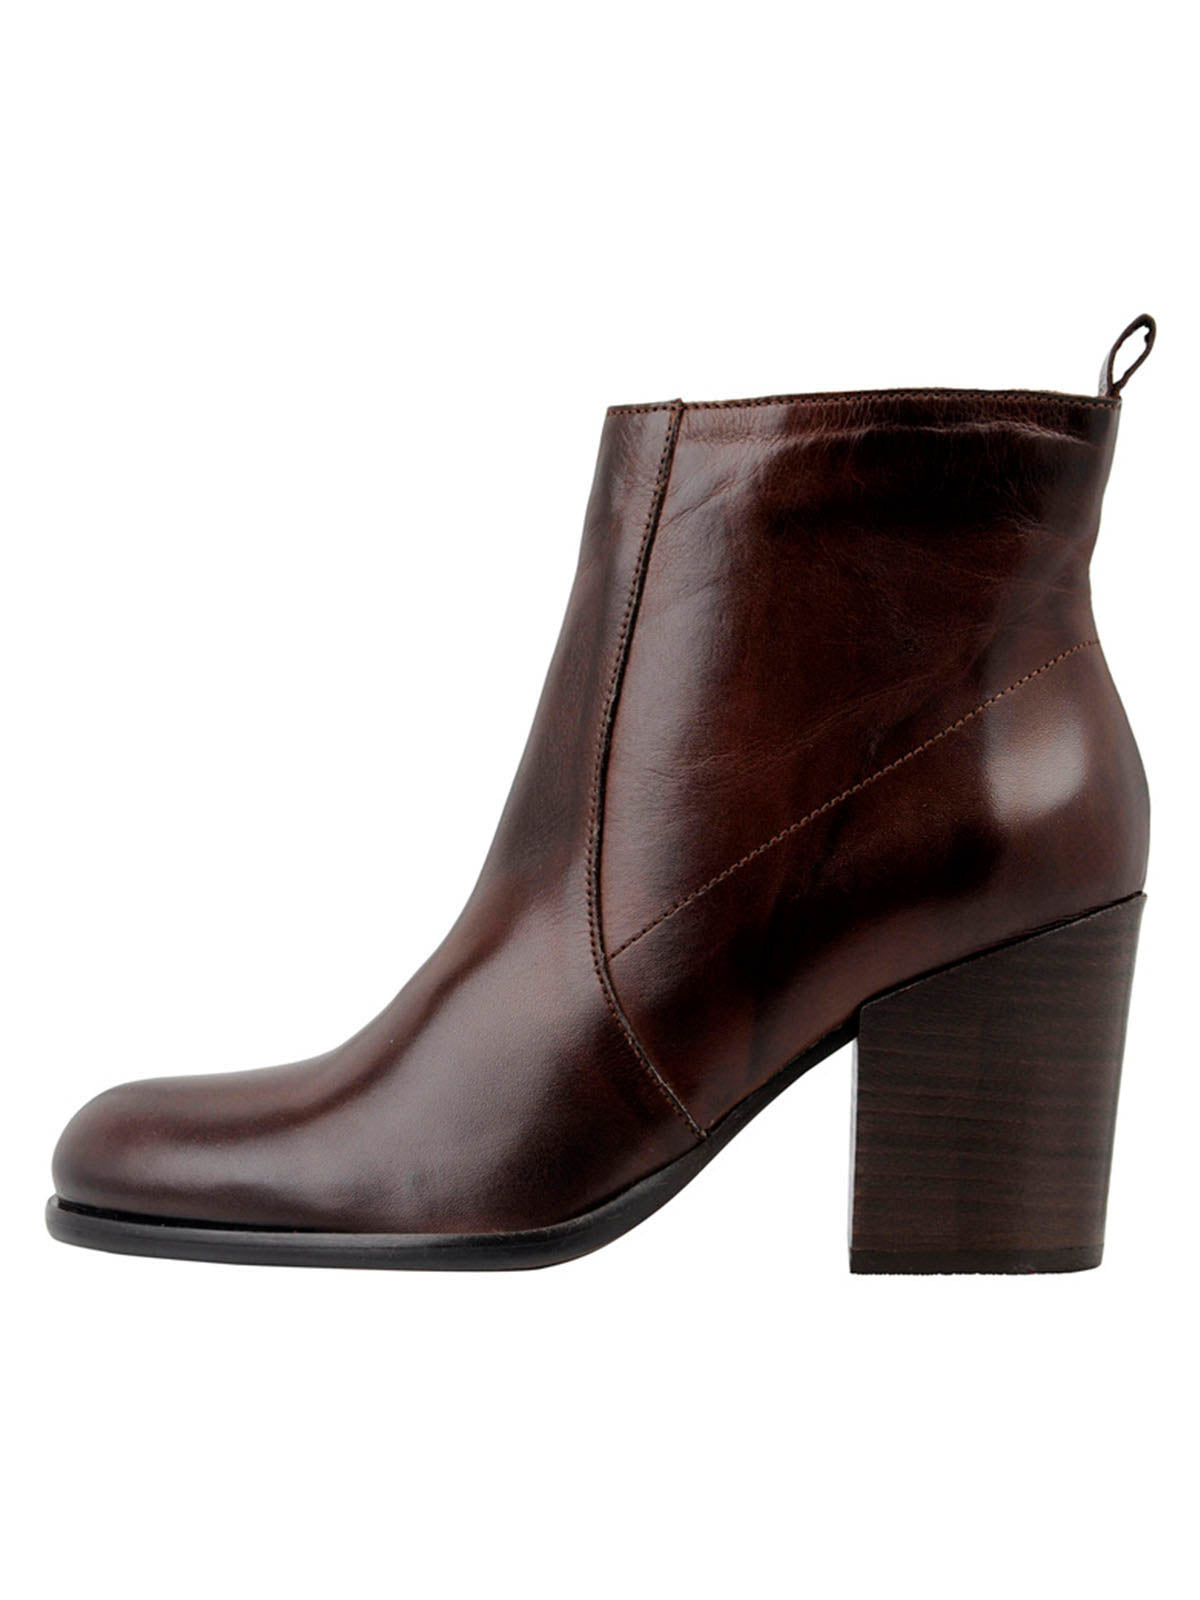 BIADELMA Ankle Boot - Dark Brown